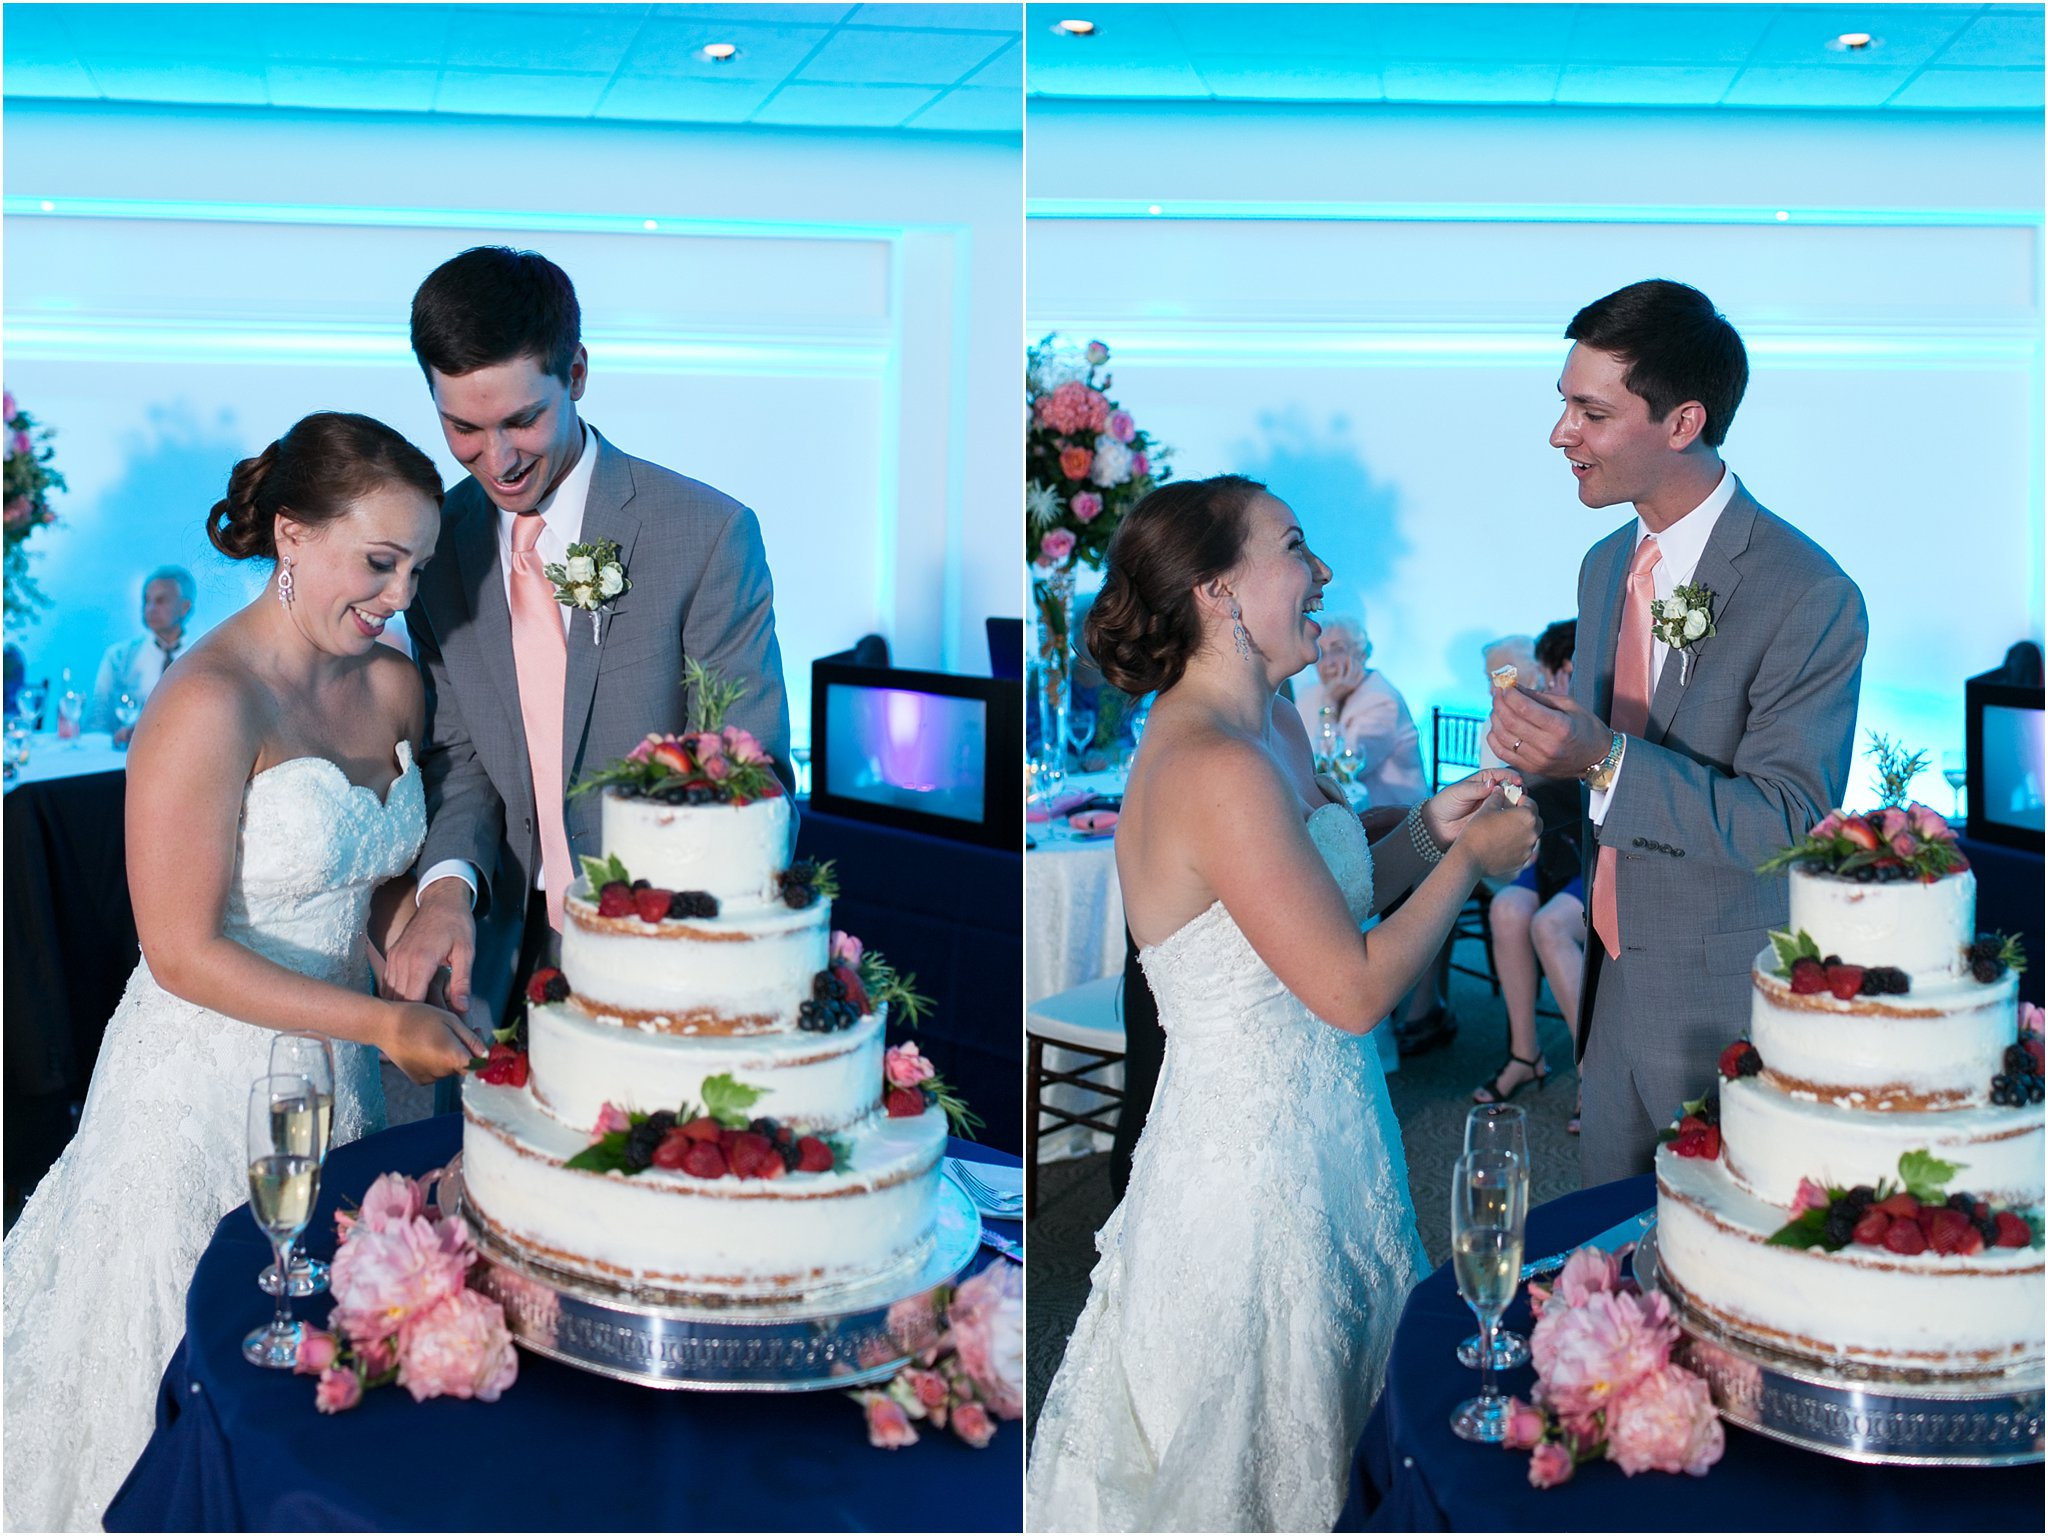 jessica_ryan_photography_wedding_photography_virginiabeach_virginia_candid_authentic_wedding_portraits_marina_shores_yacht_club_chesapeake_bay_1951